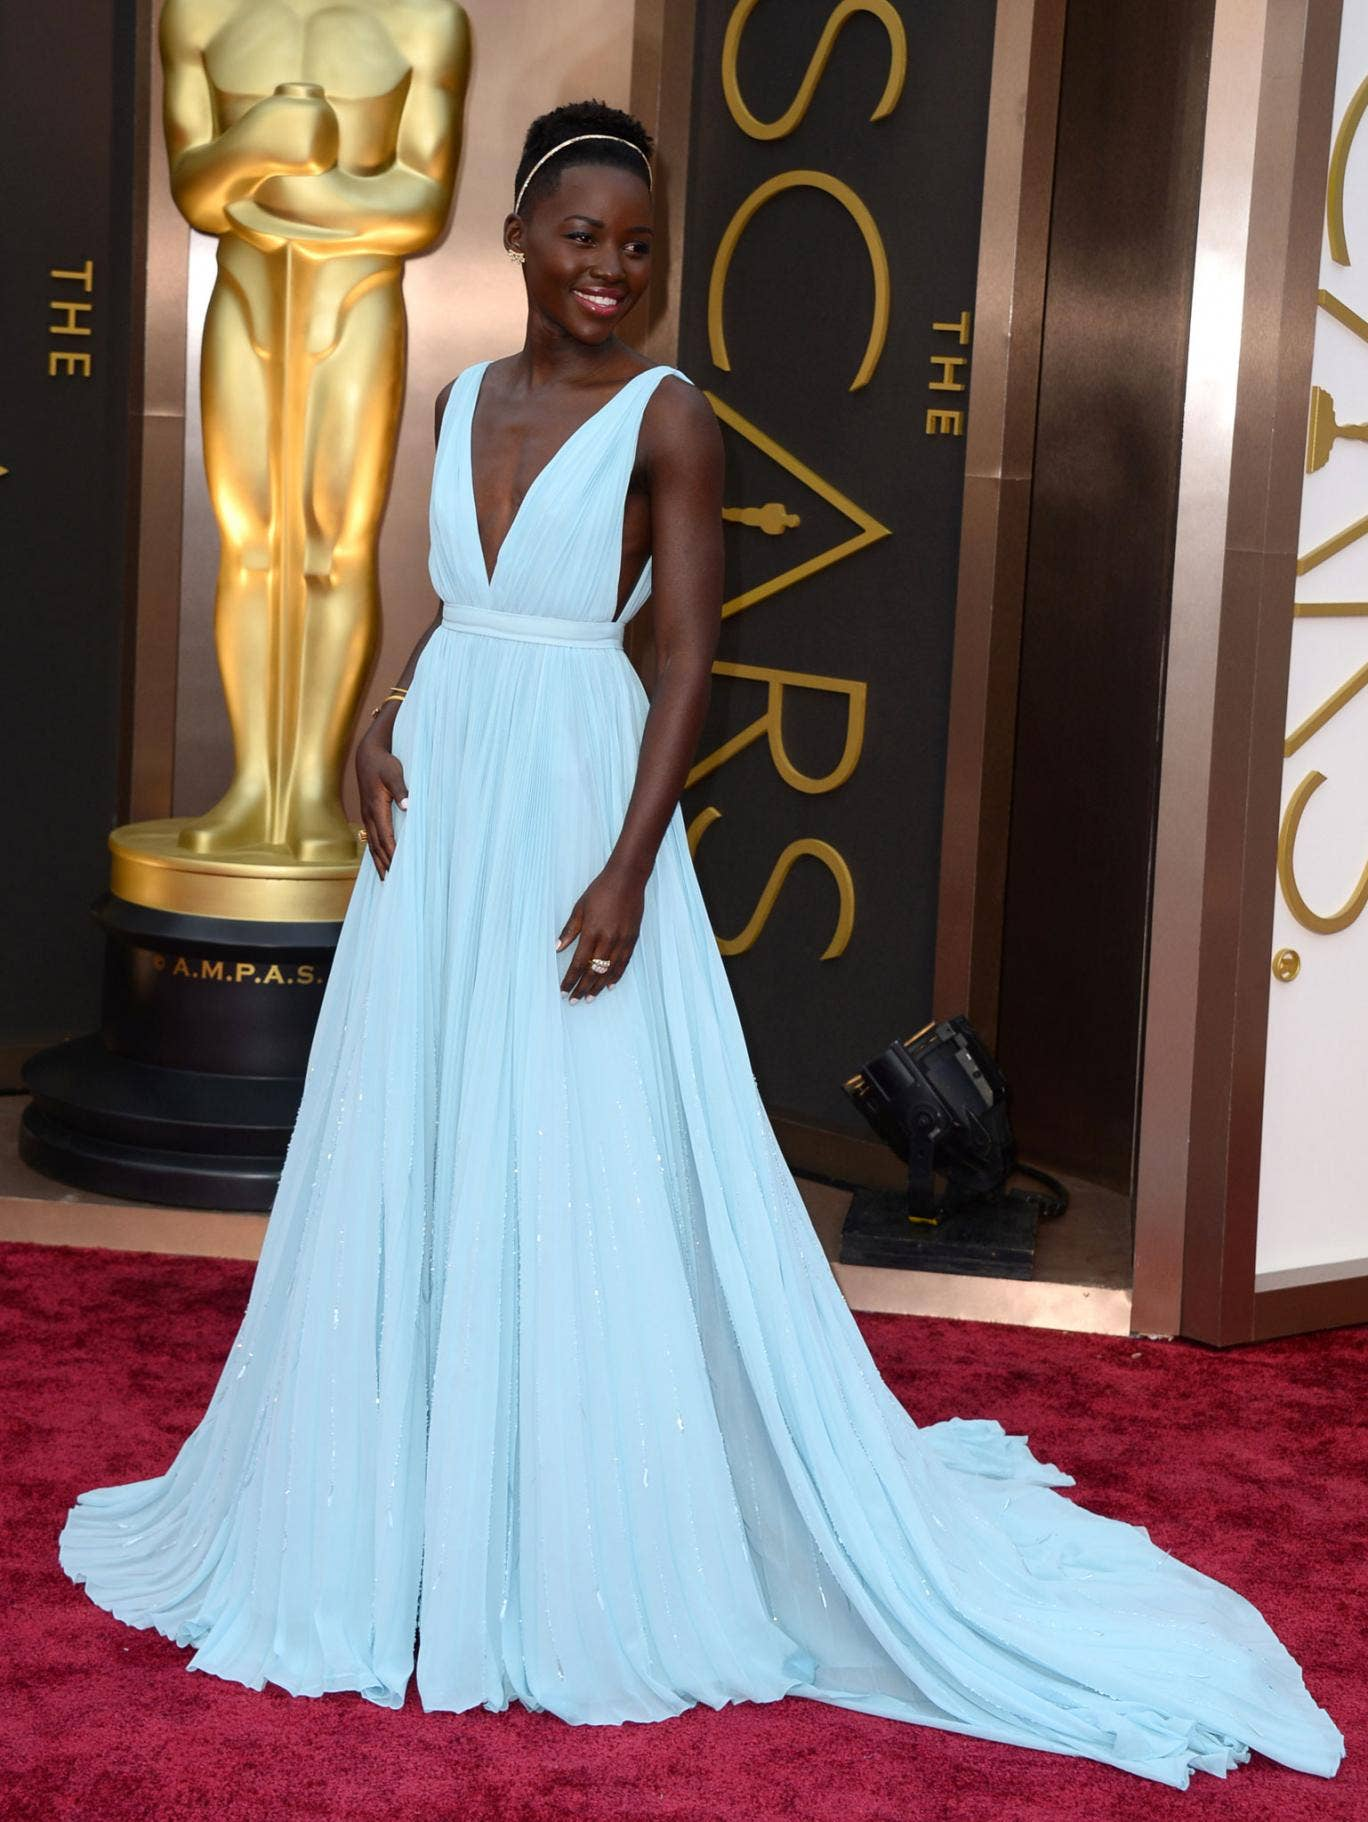 Lupita Nyong'o stuns in a plunging pale blue dress at the 86th Academy Awards